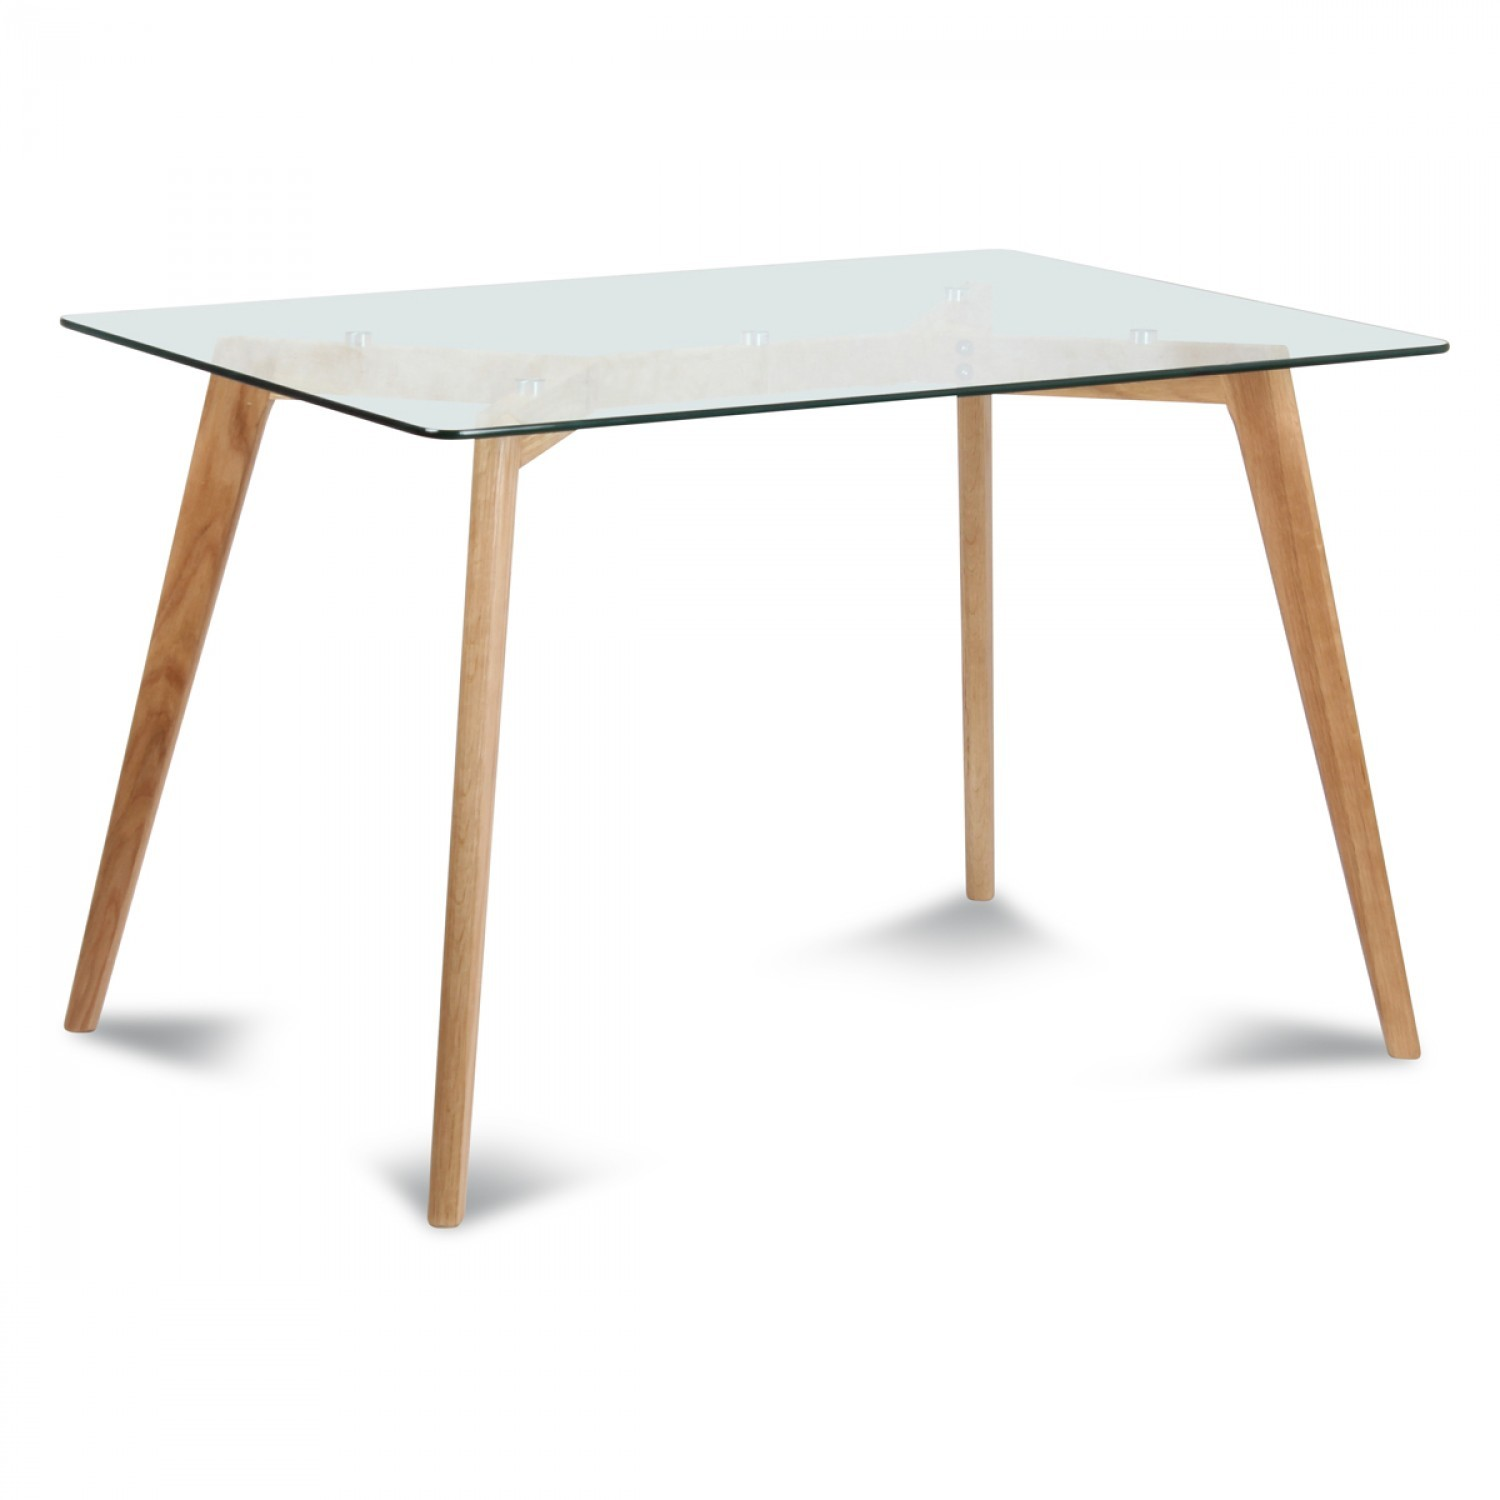 Table basse de jardin plateau verre for Table basse scandinave avec plateau